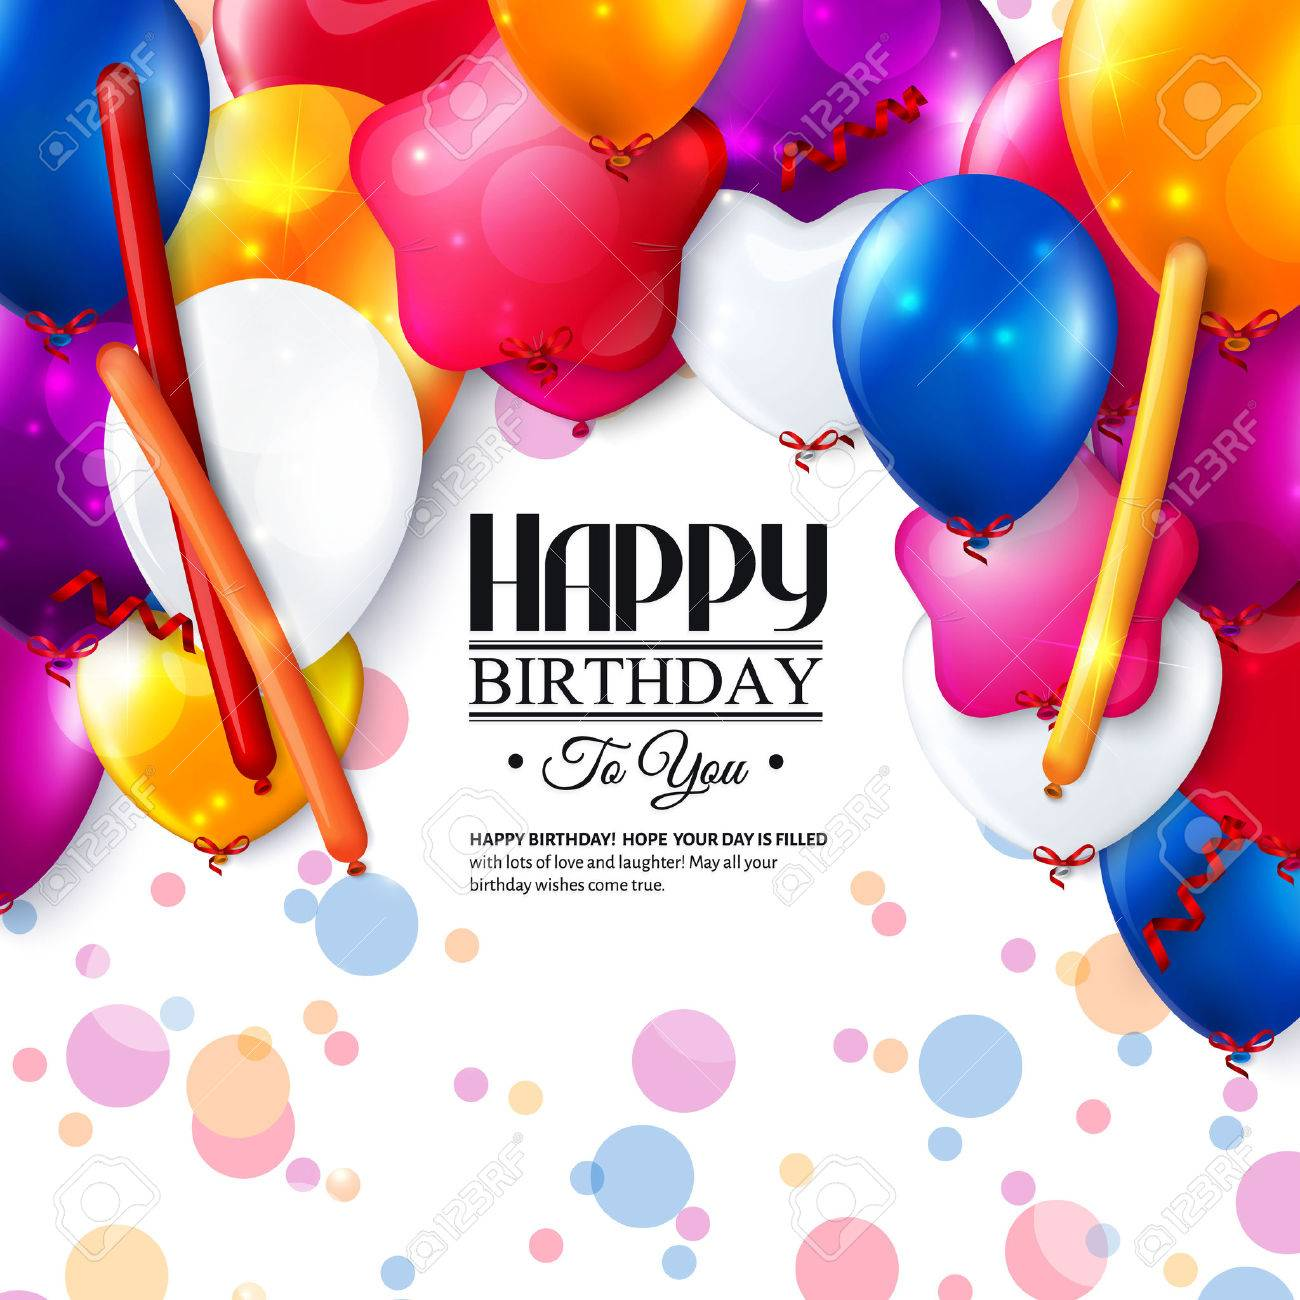 Birthday card with colorful balloons and confetti. - 35090901